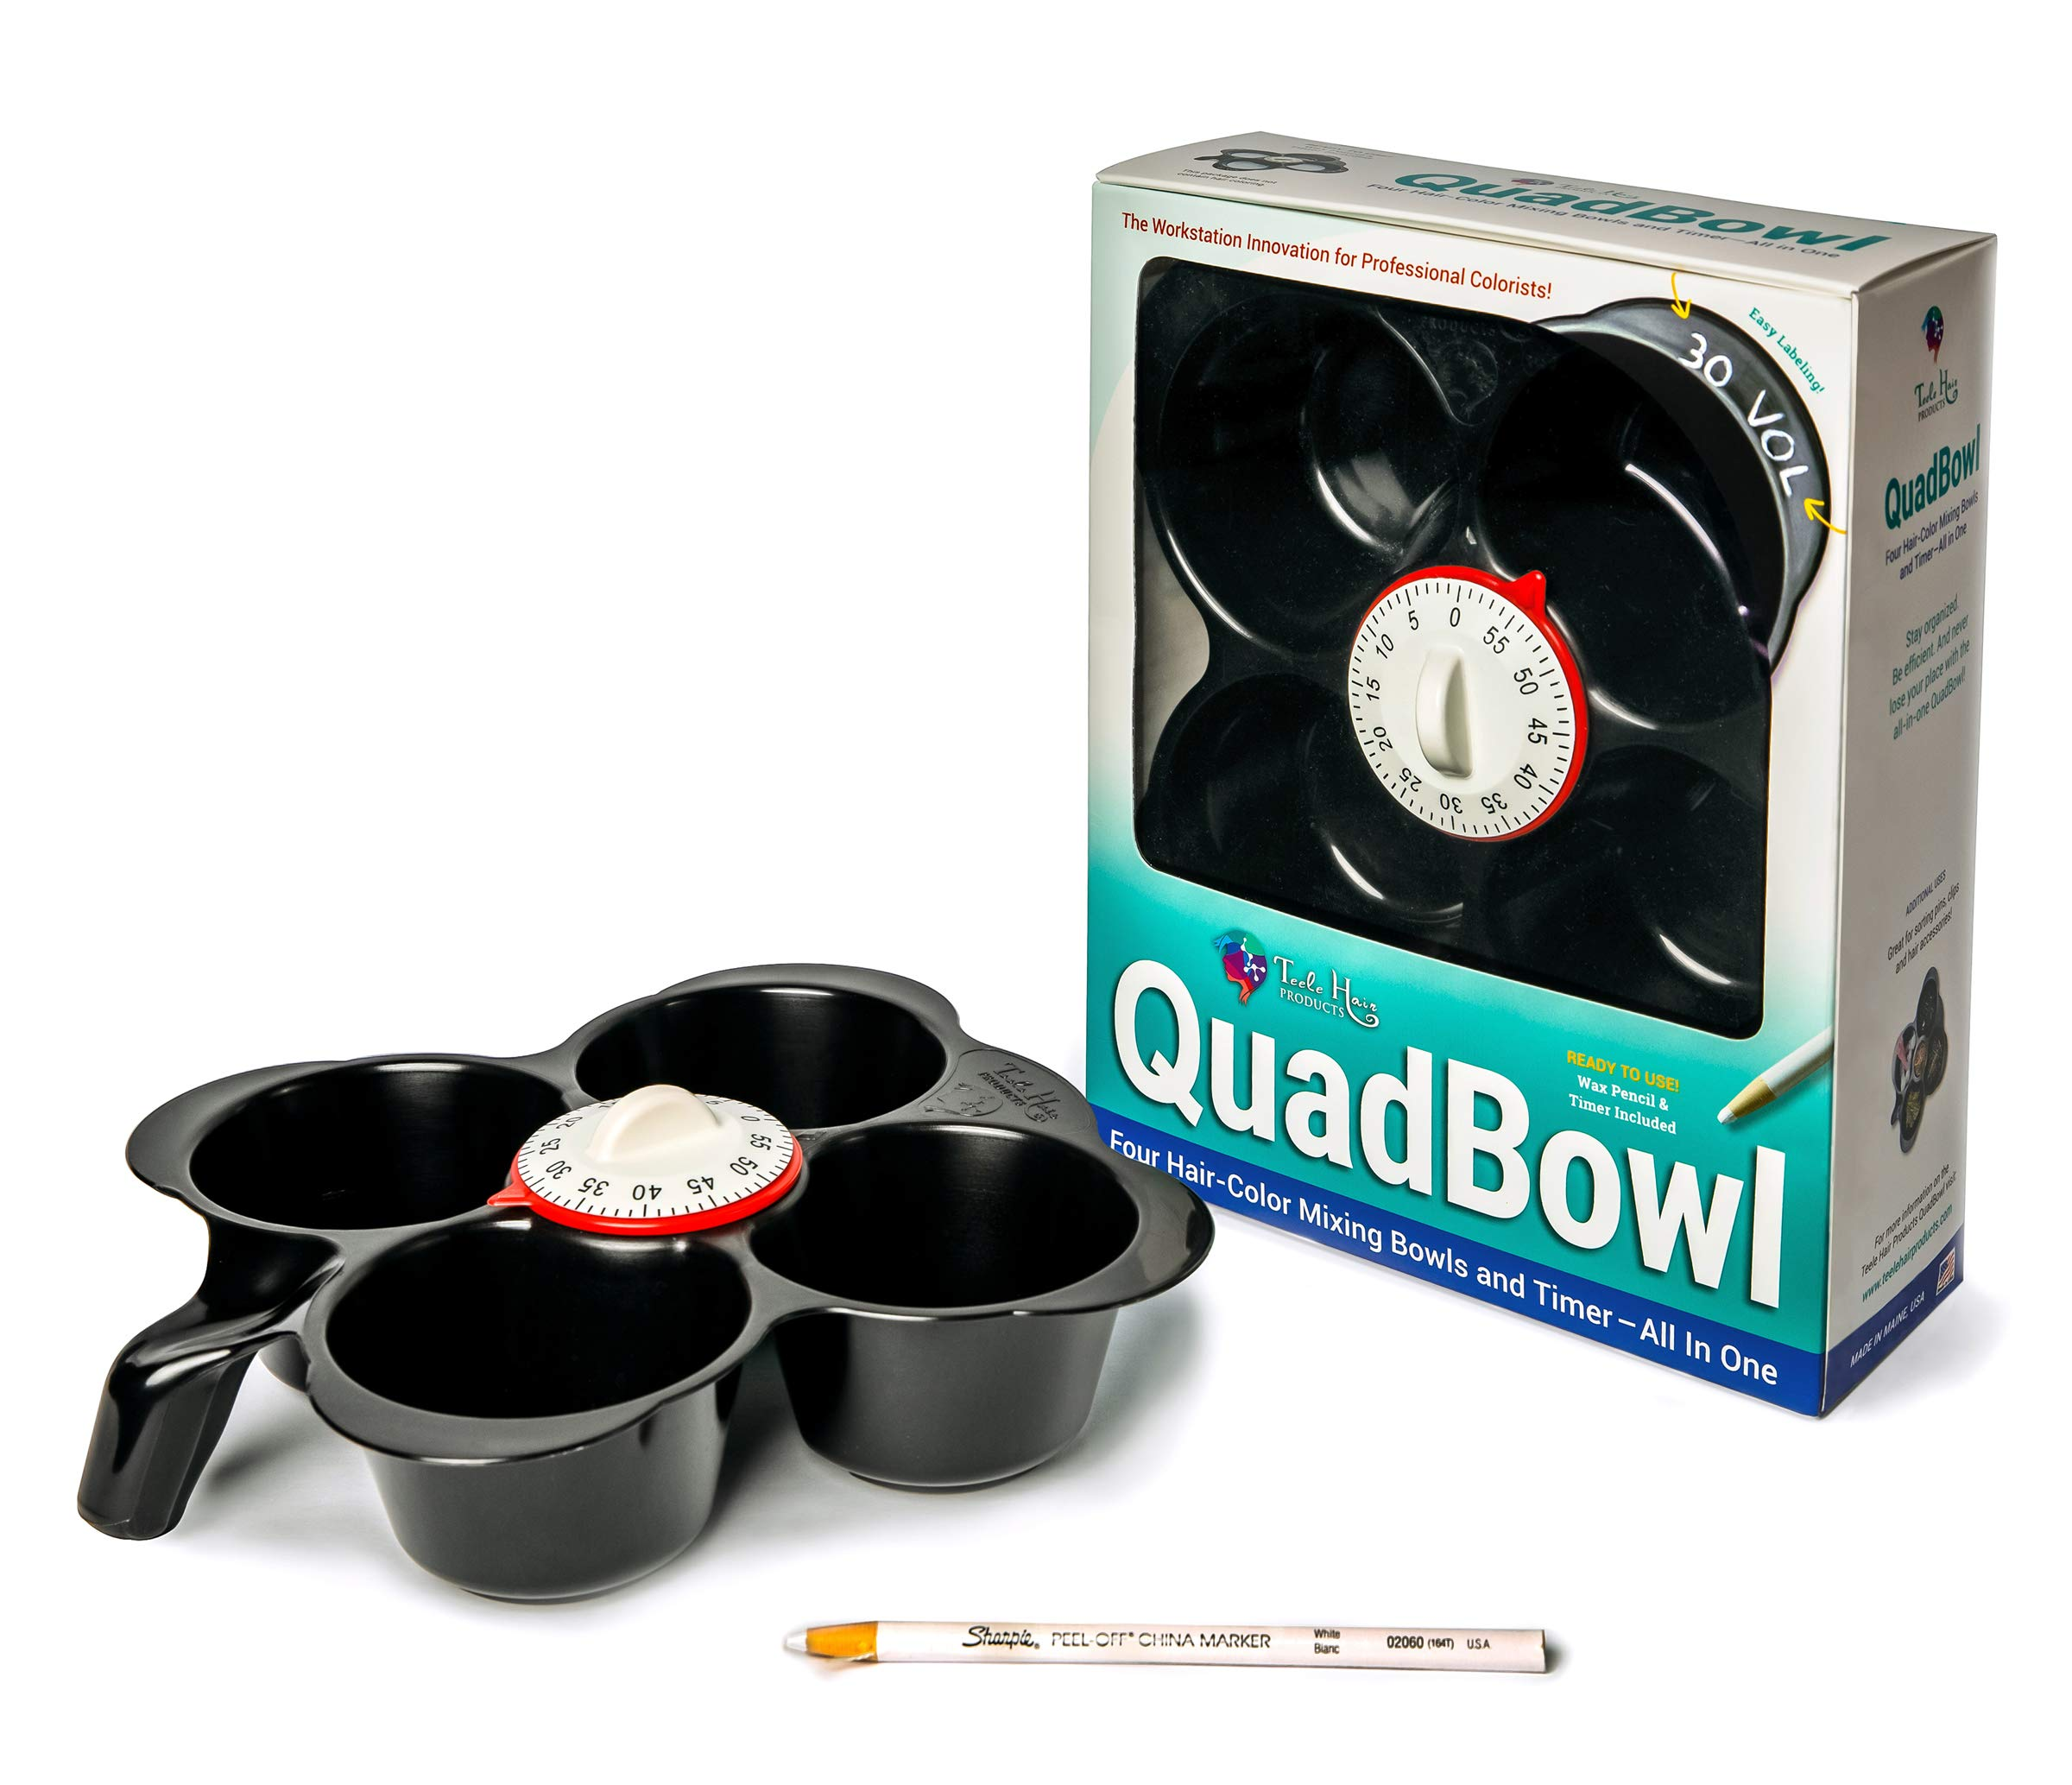 Teele Hair Products QuadBowl: Four Hair-Color Mixing Bowls, Labeling System, and Timer-All in One by Teele Hair Products